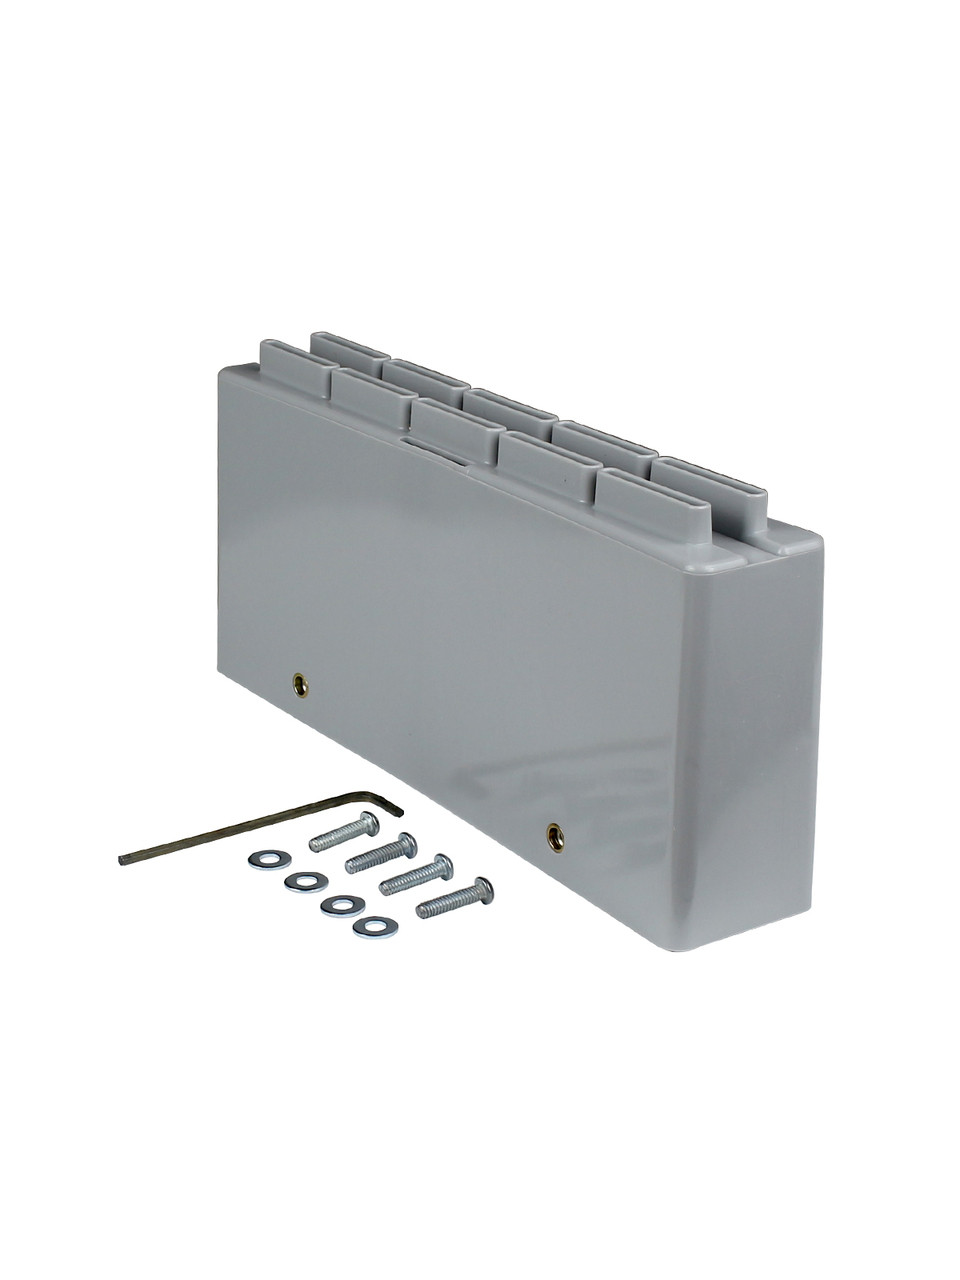 Connecting Kit for WW30 and WWXL